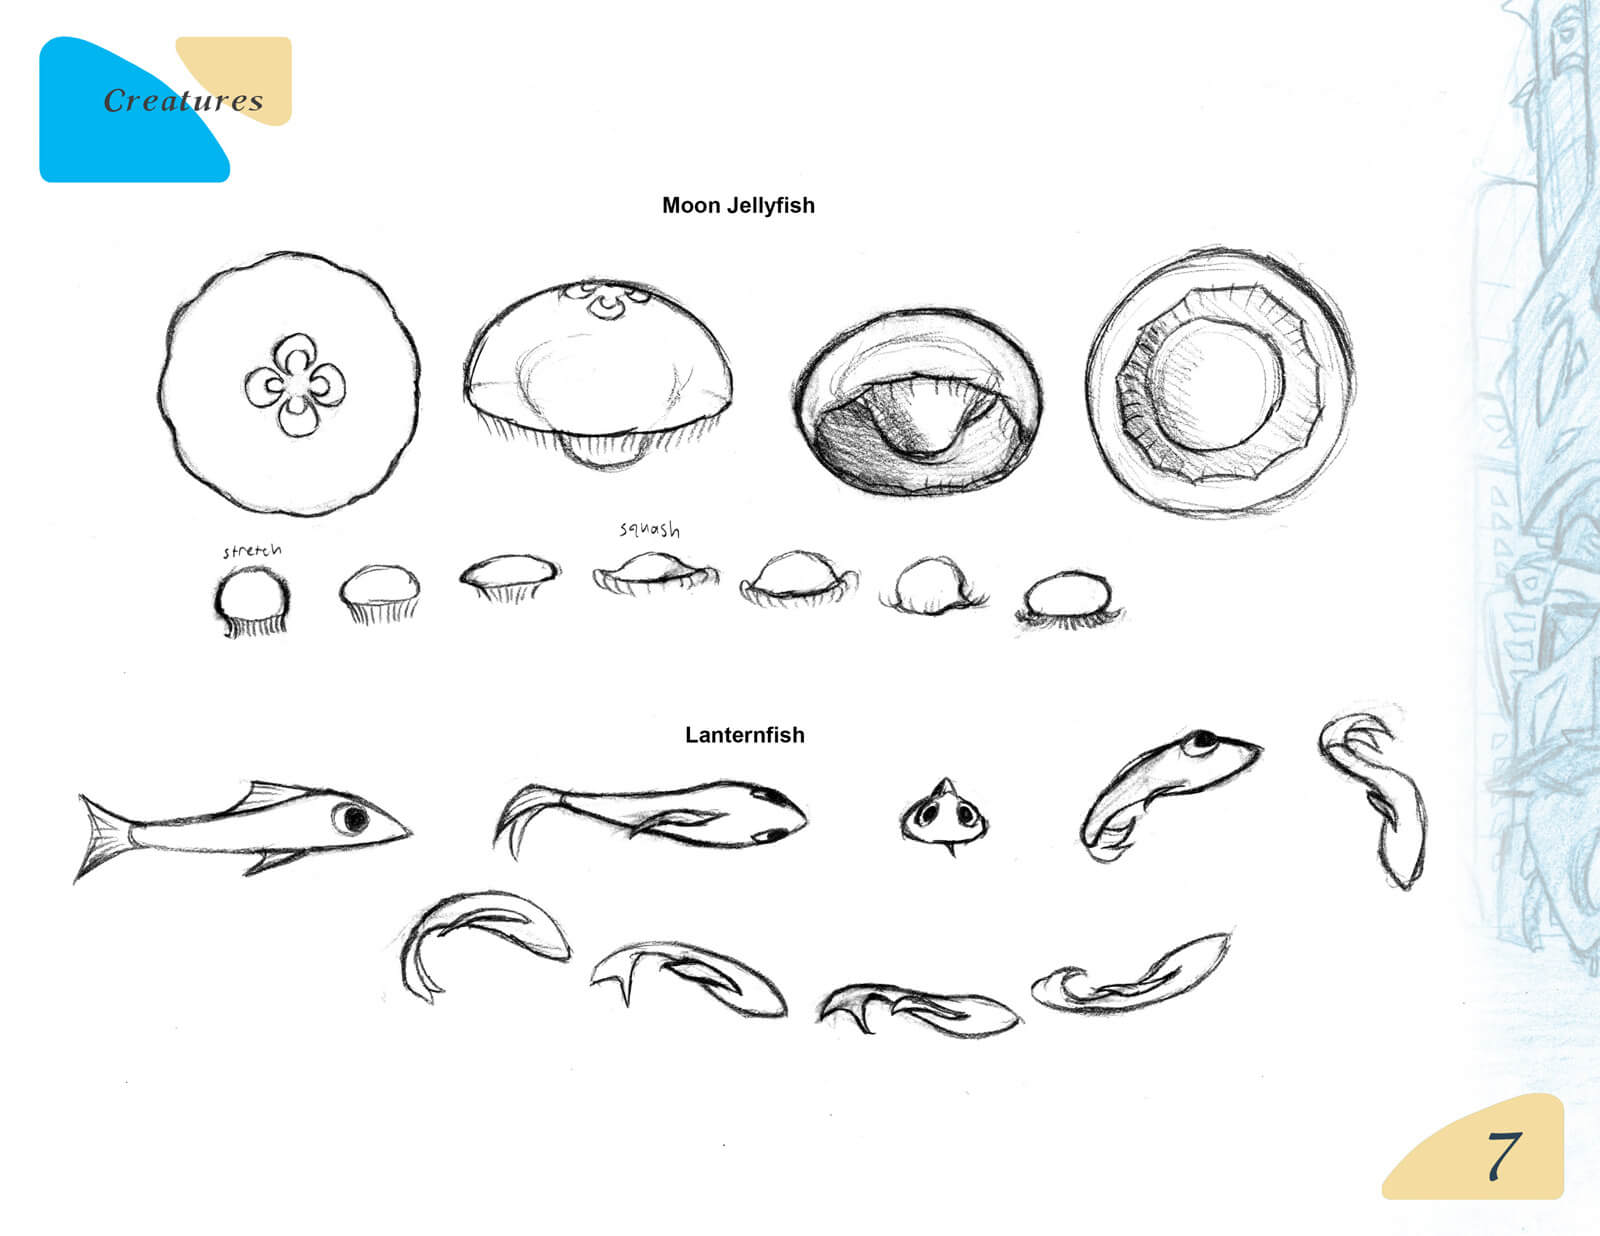 Black-and-white sketches of a moon jellyfish and lanternfish in various poses for the film Beneath the Night Sea